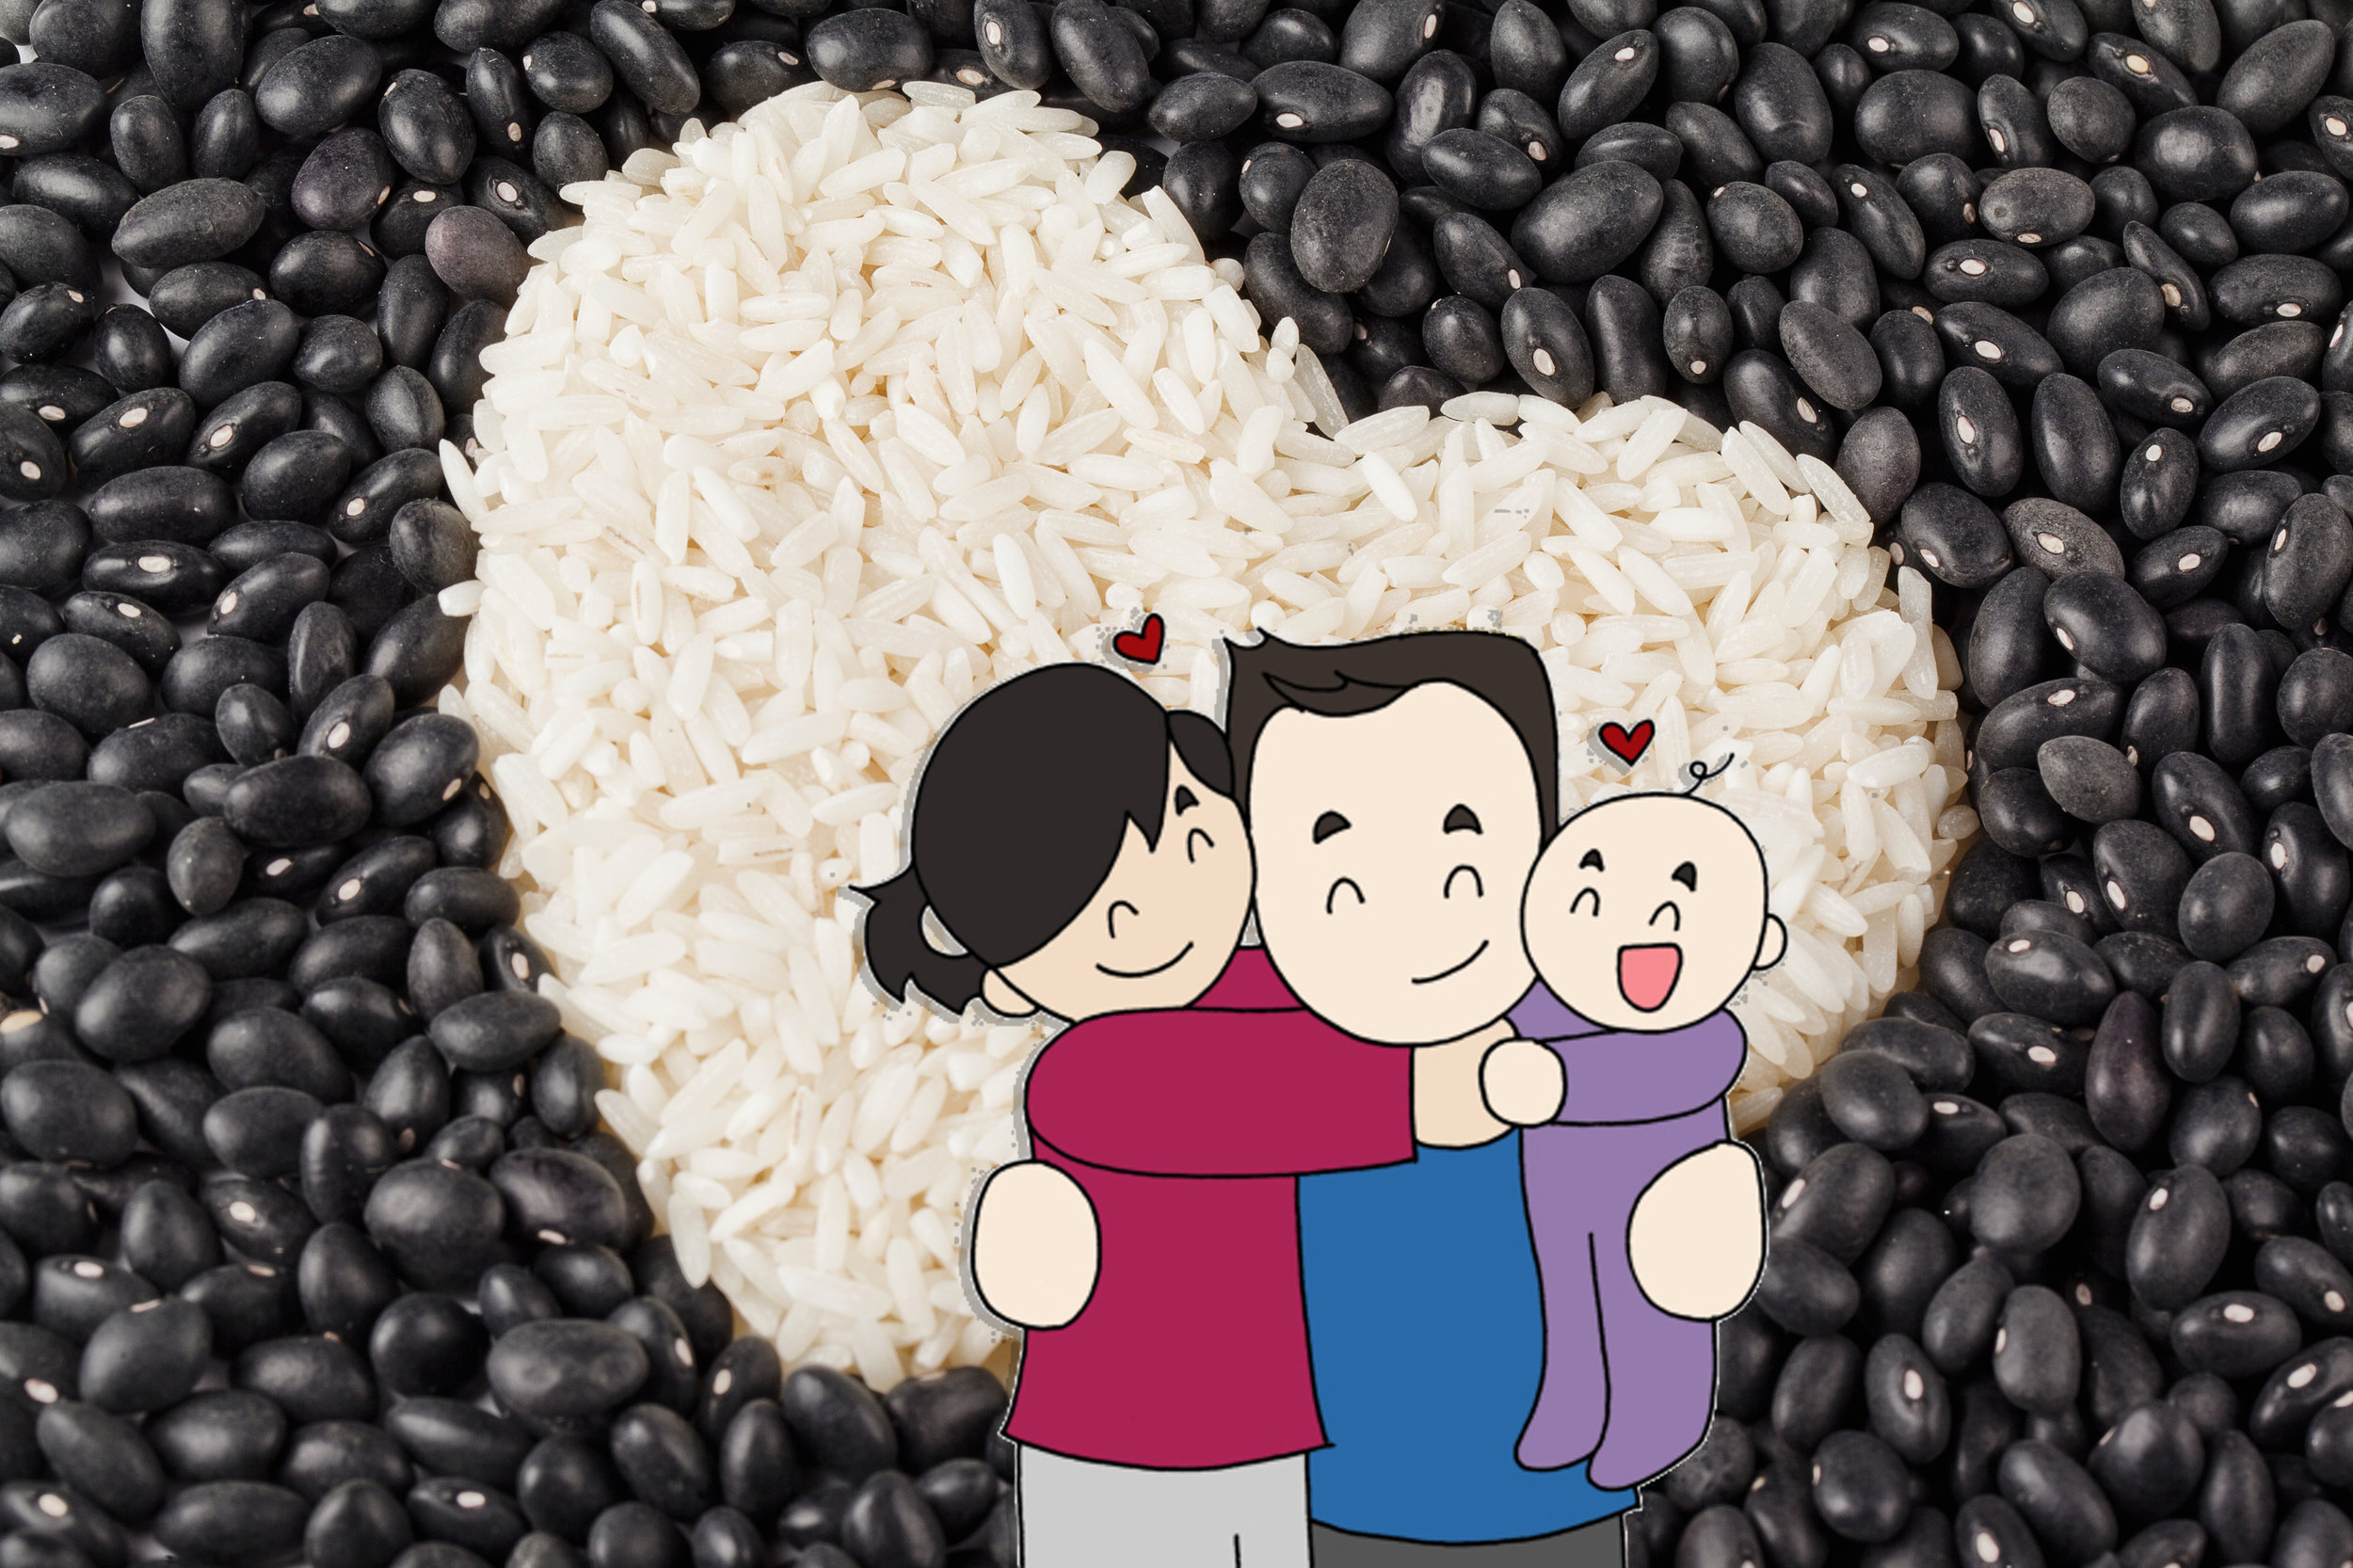 We Are Rice and Beans - A comic blog chronicling our day-to-day antics as a newly-wedded, nerdy, interracial couple.